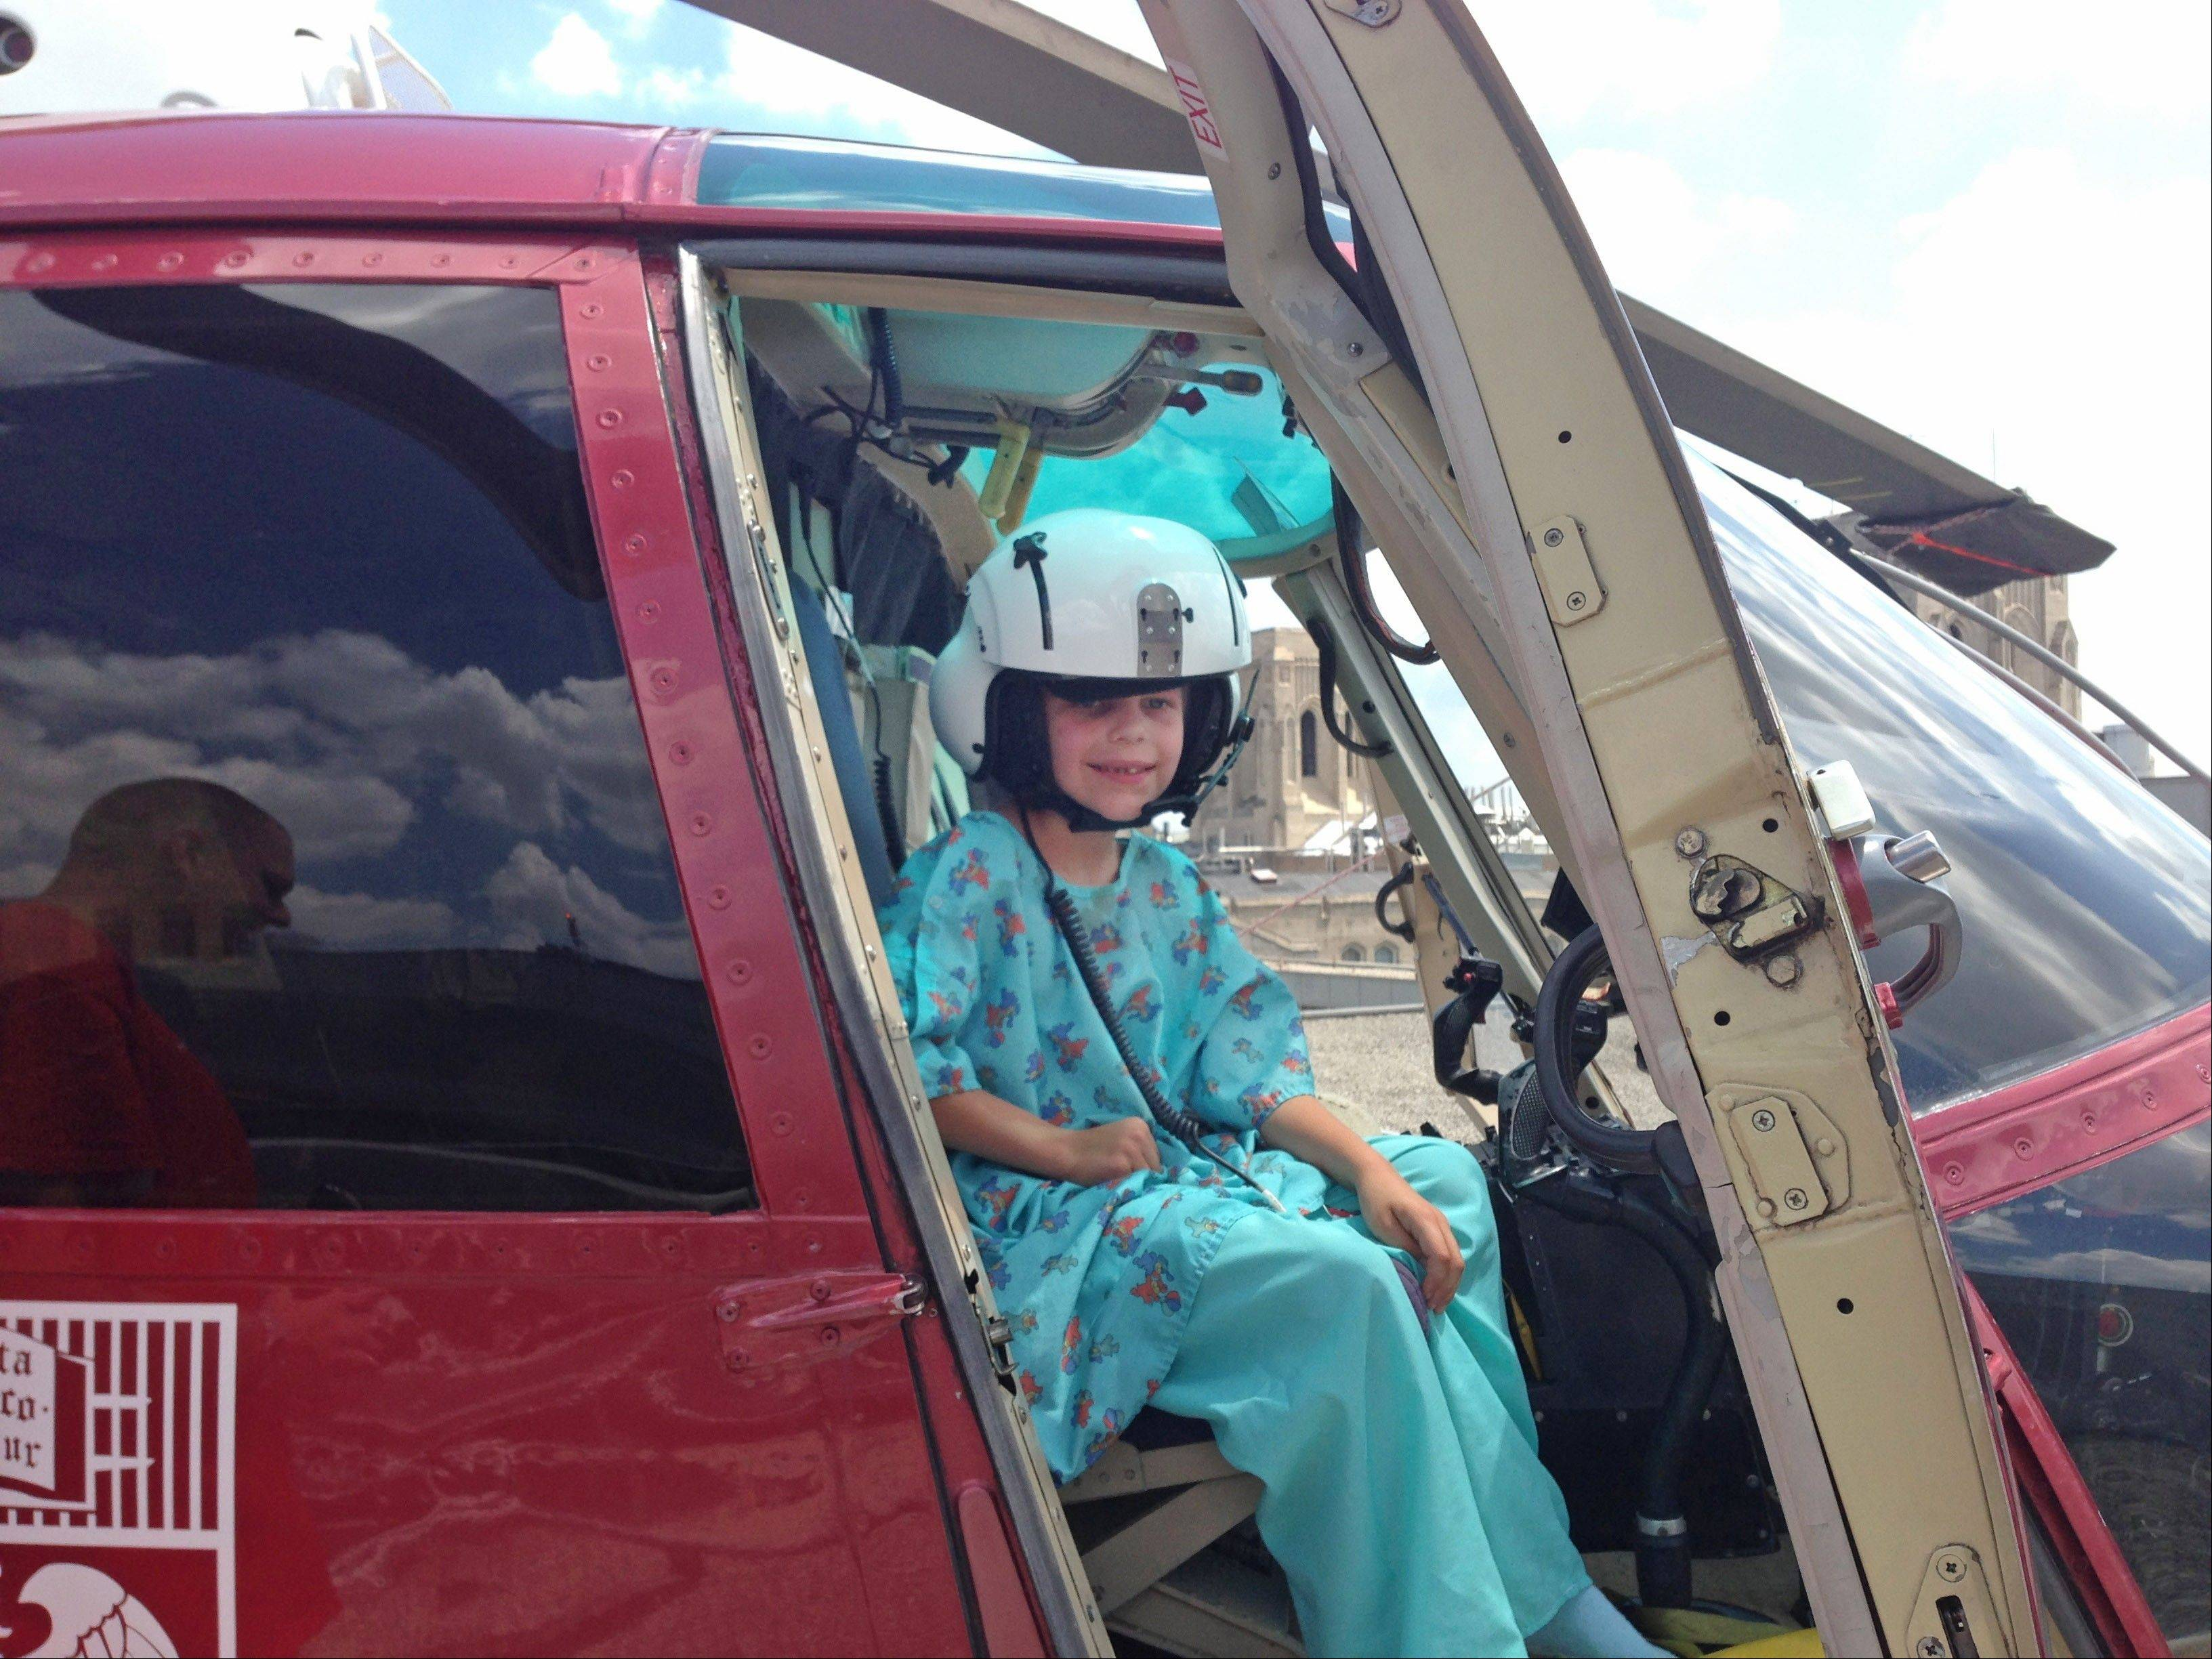 Nathan Woessner visits the Comer Children Hospital�s rooftop landing pad earlier this week. The boy survived being buried for more than three hours in a dune at Indiana Dunes National Lakeshore on July 12.